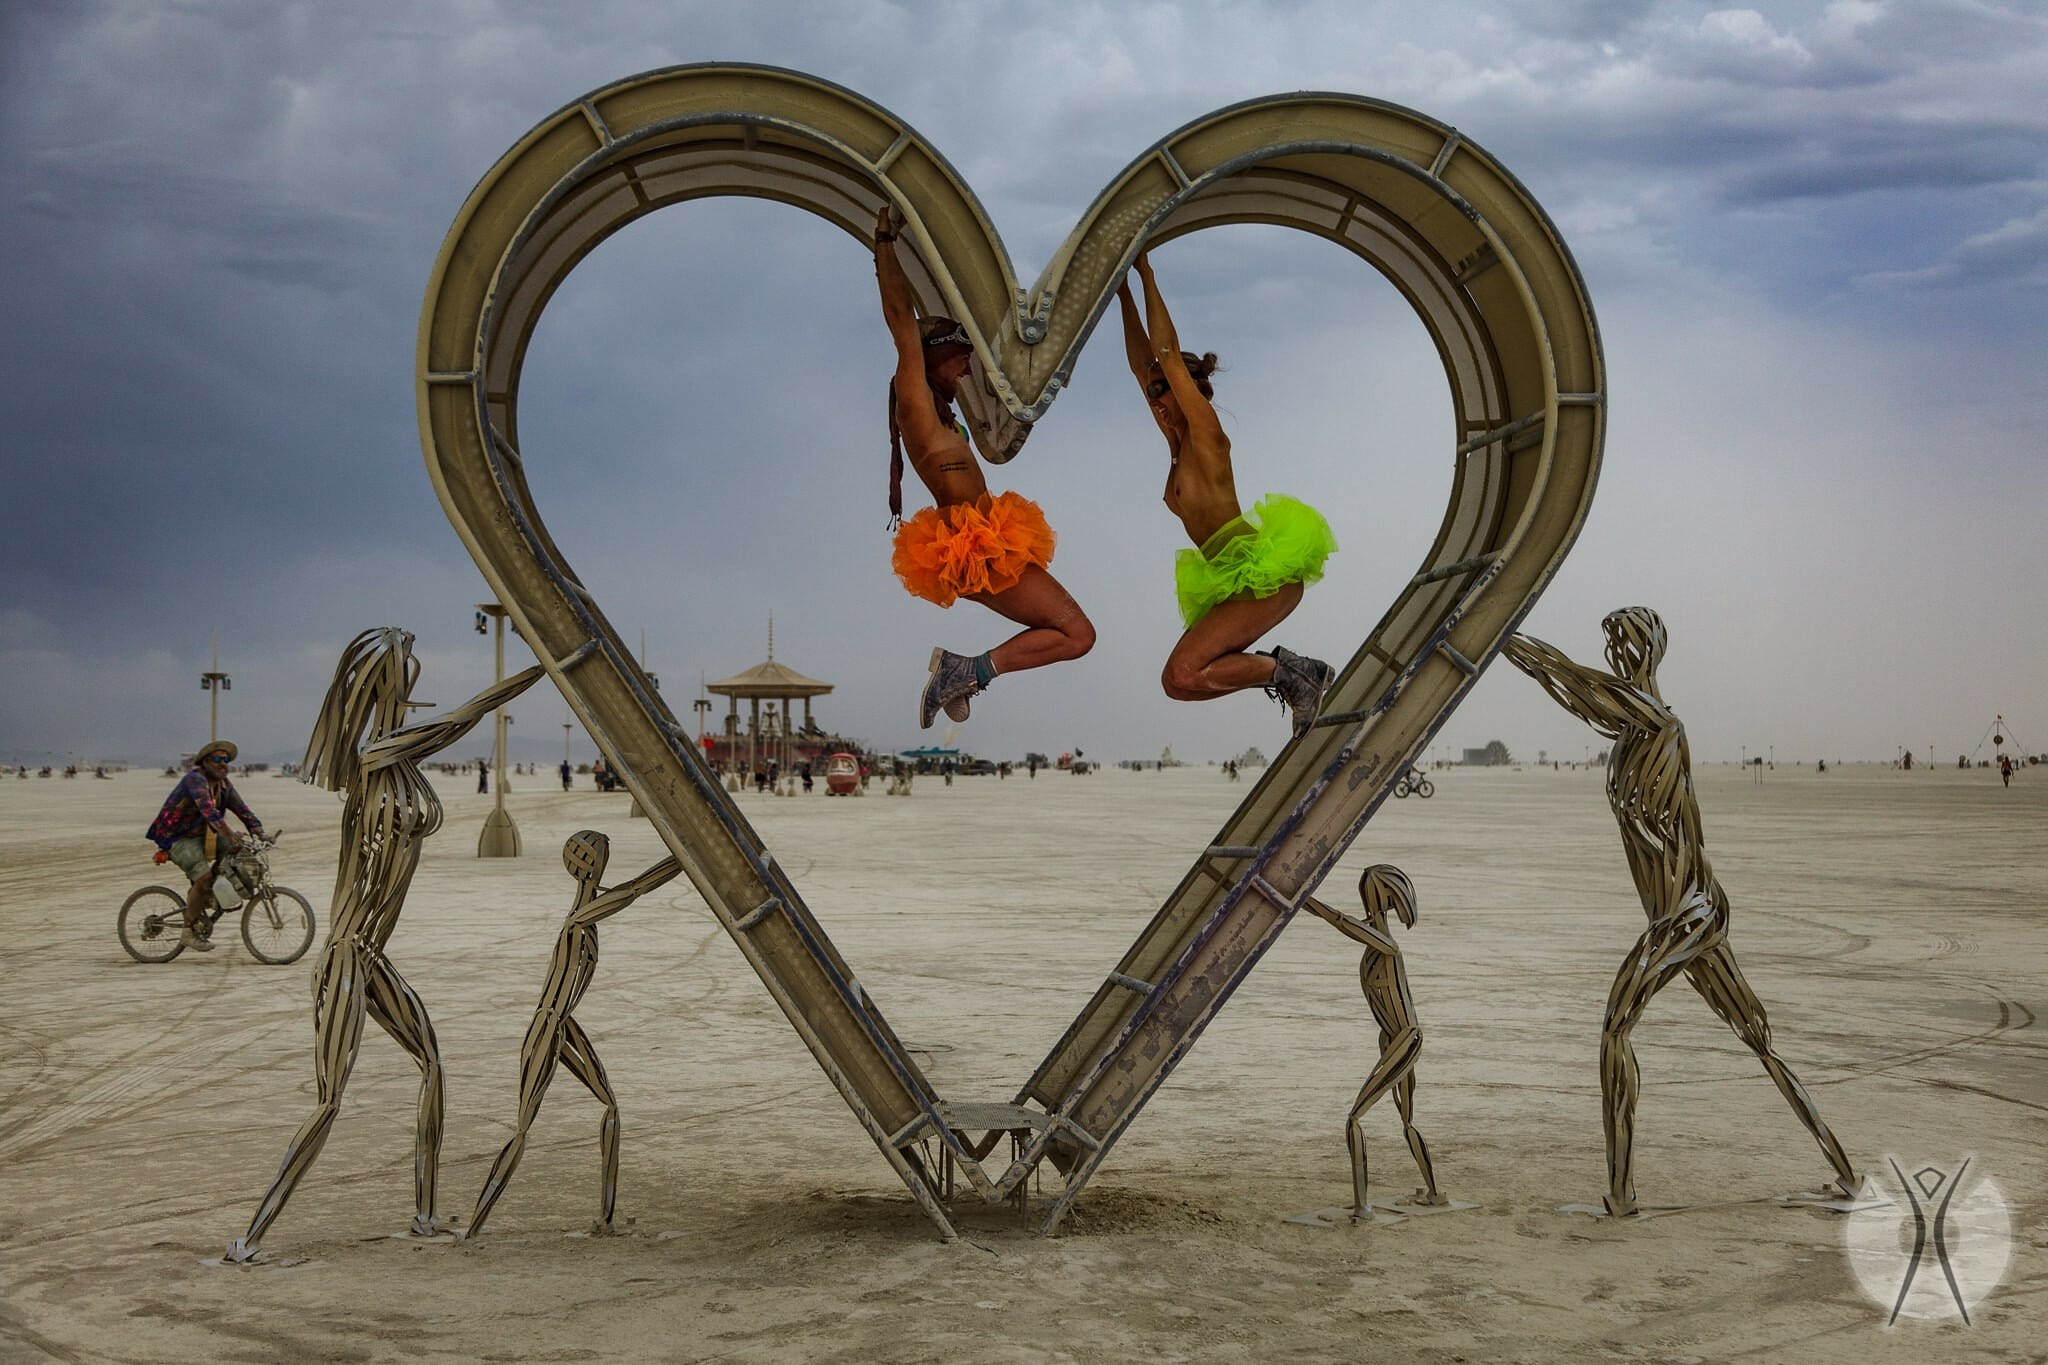 Burning Man theme for 2020 revealedBm